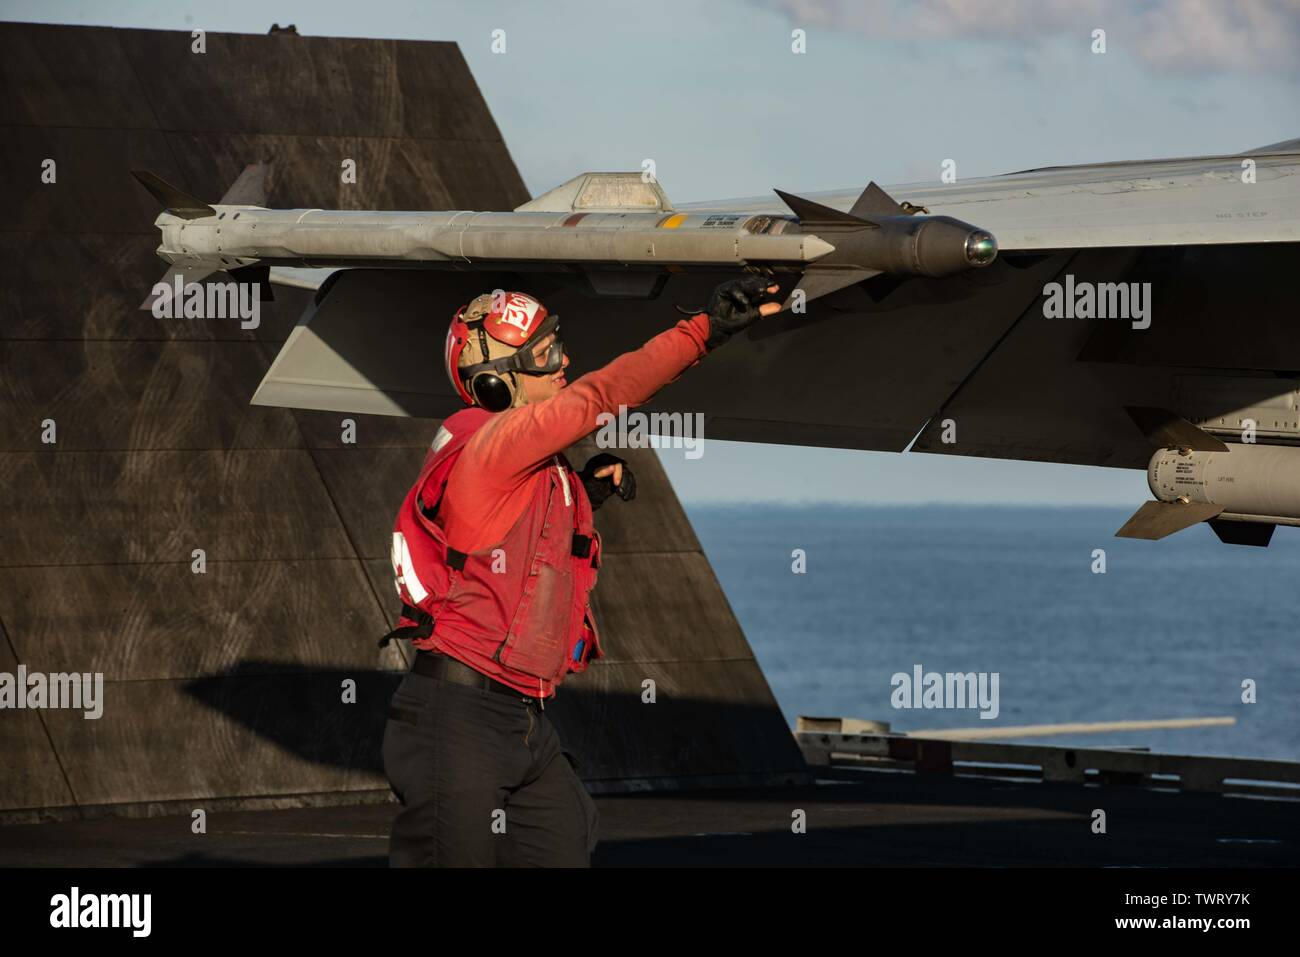 190620-N-CL027-2273  SOUTH CHINA SEA (June 20, 2019) An Aviation Ordnanceman inspects a seated missile on an F/A-18E Super Hornet from Strike Fighter Squadron (VFA) 115 prior to launch on the flight deck aboard the Navy's forward-deployed aircraft carrier USS Ronald Reagan (CVN 76) during flight operations. Ronald Reagan, the flagship of Carrier Strike Group 5, provides a combat-ready force that protects and defends the collective maritime interests of its allies and partners in the Indo-Pacific region. (U.S. Navy photo by Mass Communication Specialist 2nd Class Janweb B. Lagazo/Released) - Stock Image